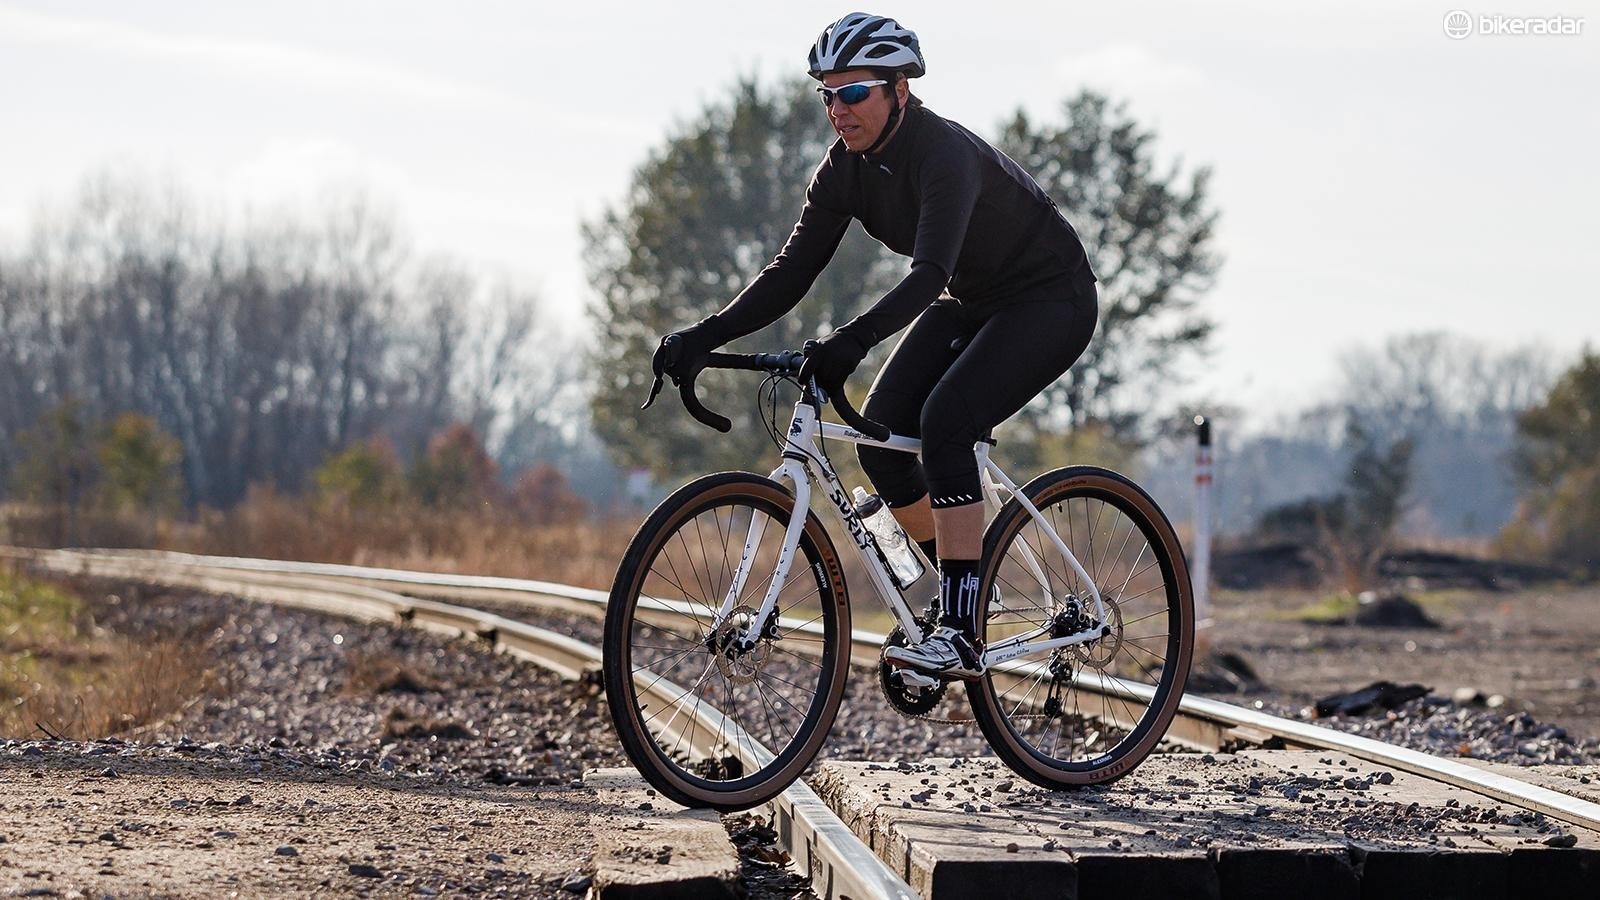 The Surly Midnight Special is a go-anywhere dropbar bike with massive tire clearance